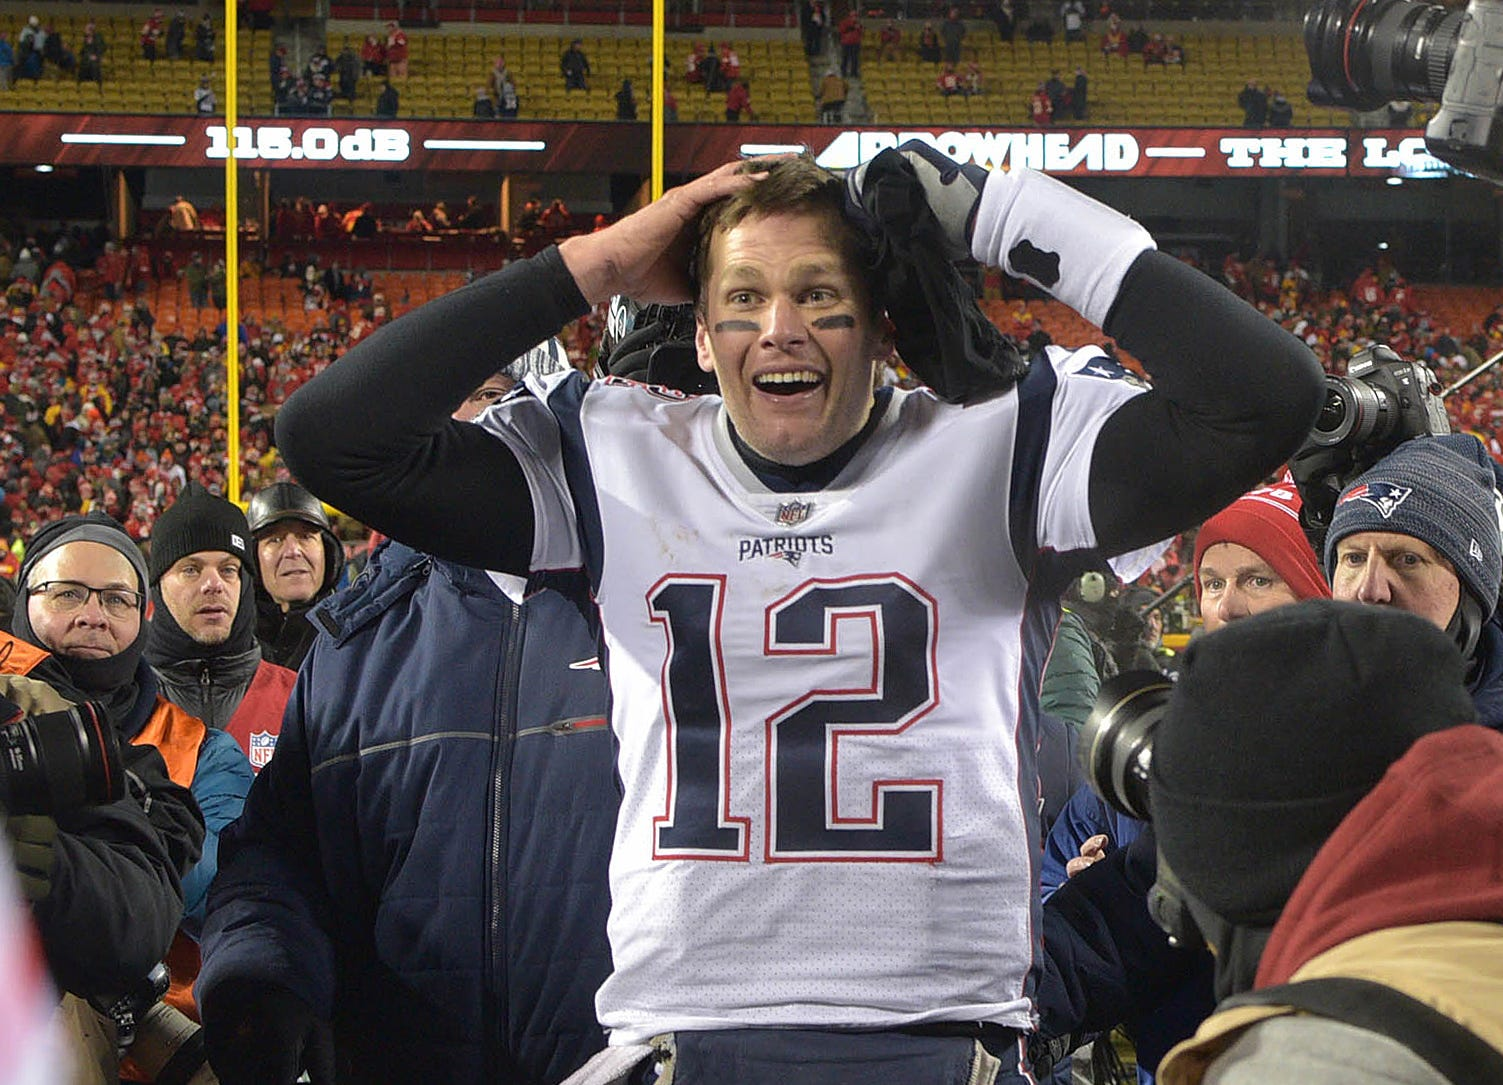 Tom Brady Leads Patriots Madden 20 Ratings Weei